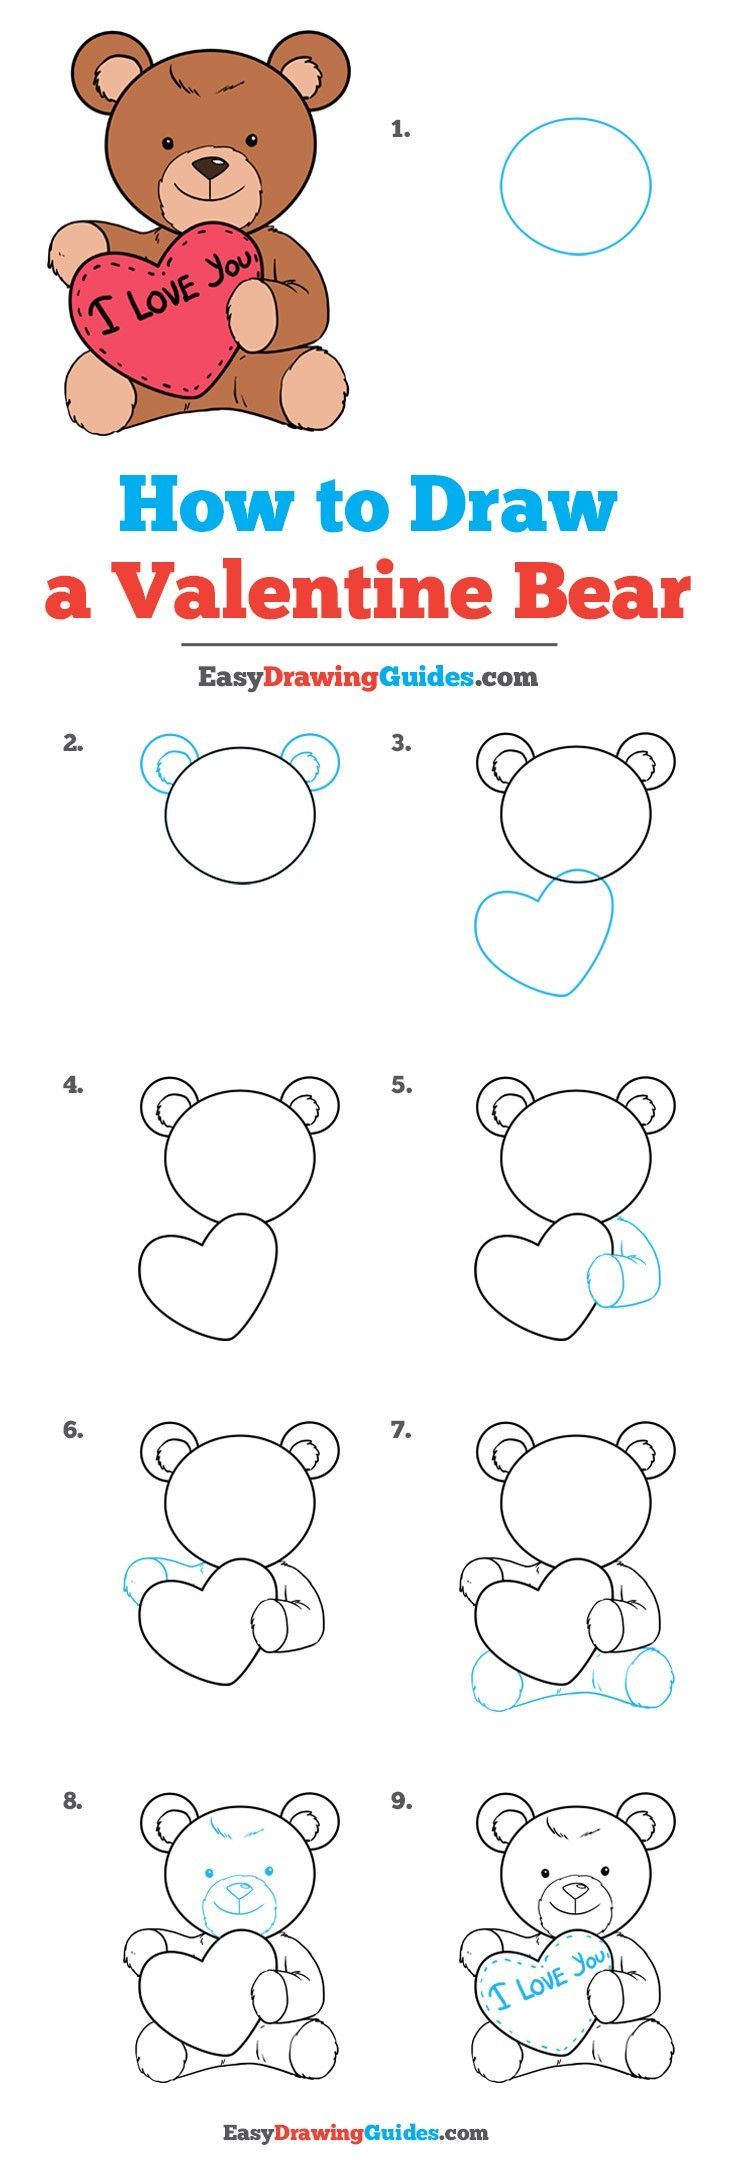 Learn How to Draw a Valentine Bear: Easy Step-by-Step Drawing Tutorial for Kids and Beginners. #Valentine Bear #drawingtutorial #easydrawing See the full tutorial at https://easydrawingguides.com/how-to-draw-a-valentine-bear/.